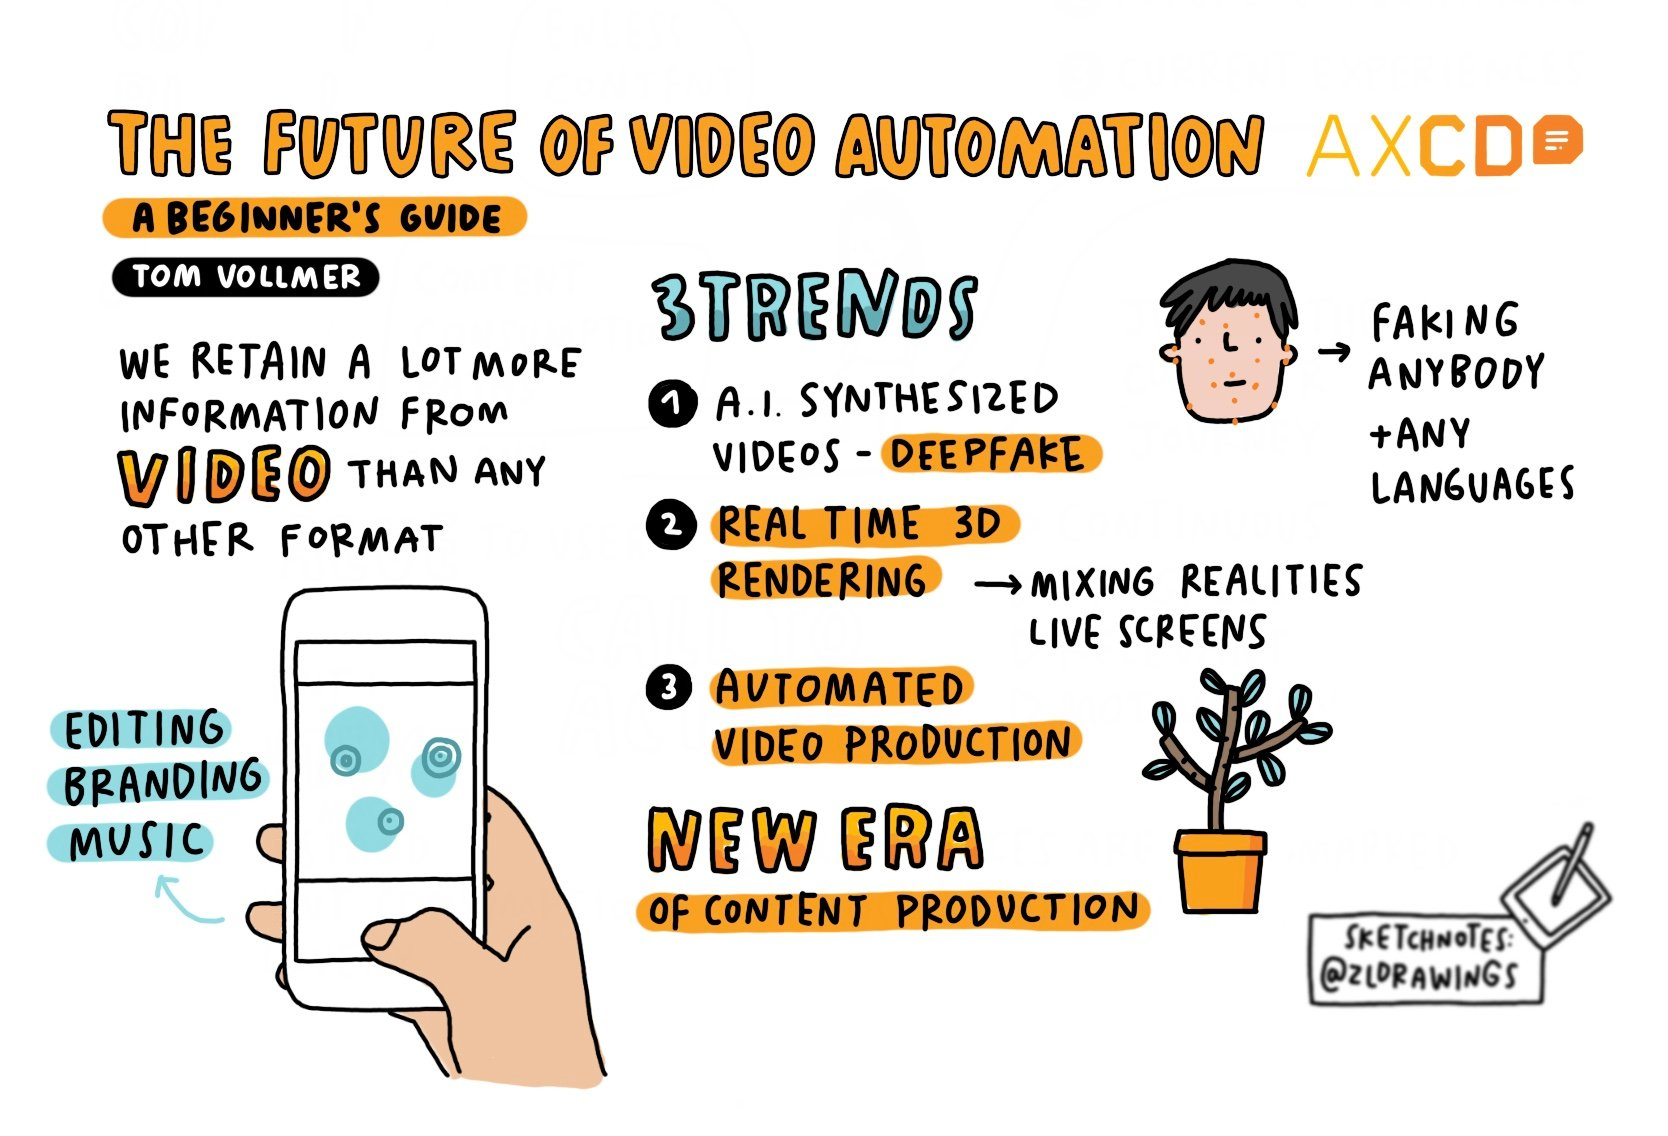 Sketchnote of AXCD Talk: the future of video automation - a beginners guide